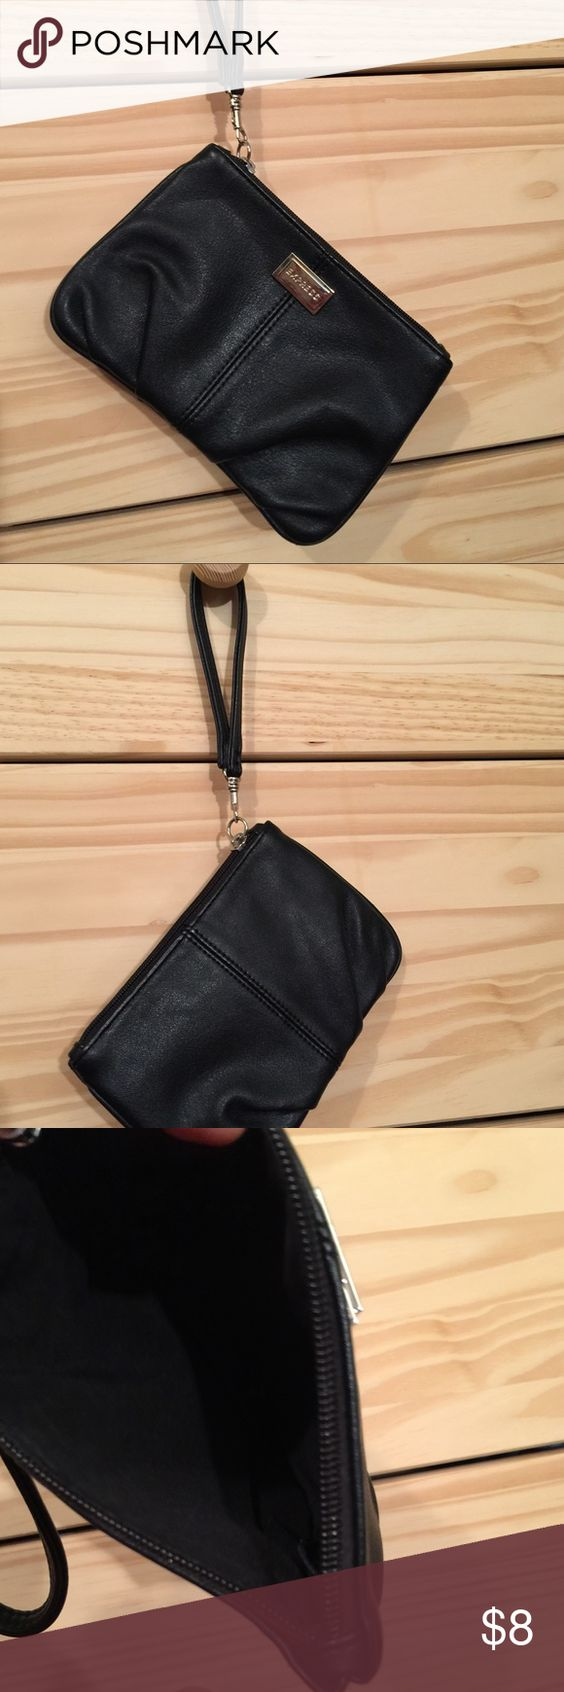 Express simple evening wristlet Cute little wristlet for an evening out. Black, Elegant and simple. In new condition. Express Bags Clutches & Wristlets